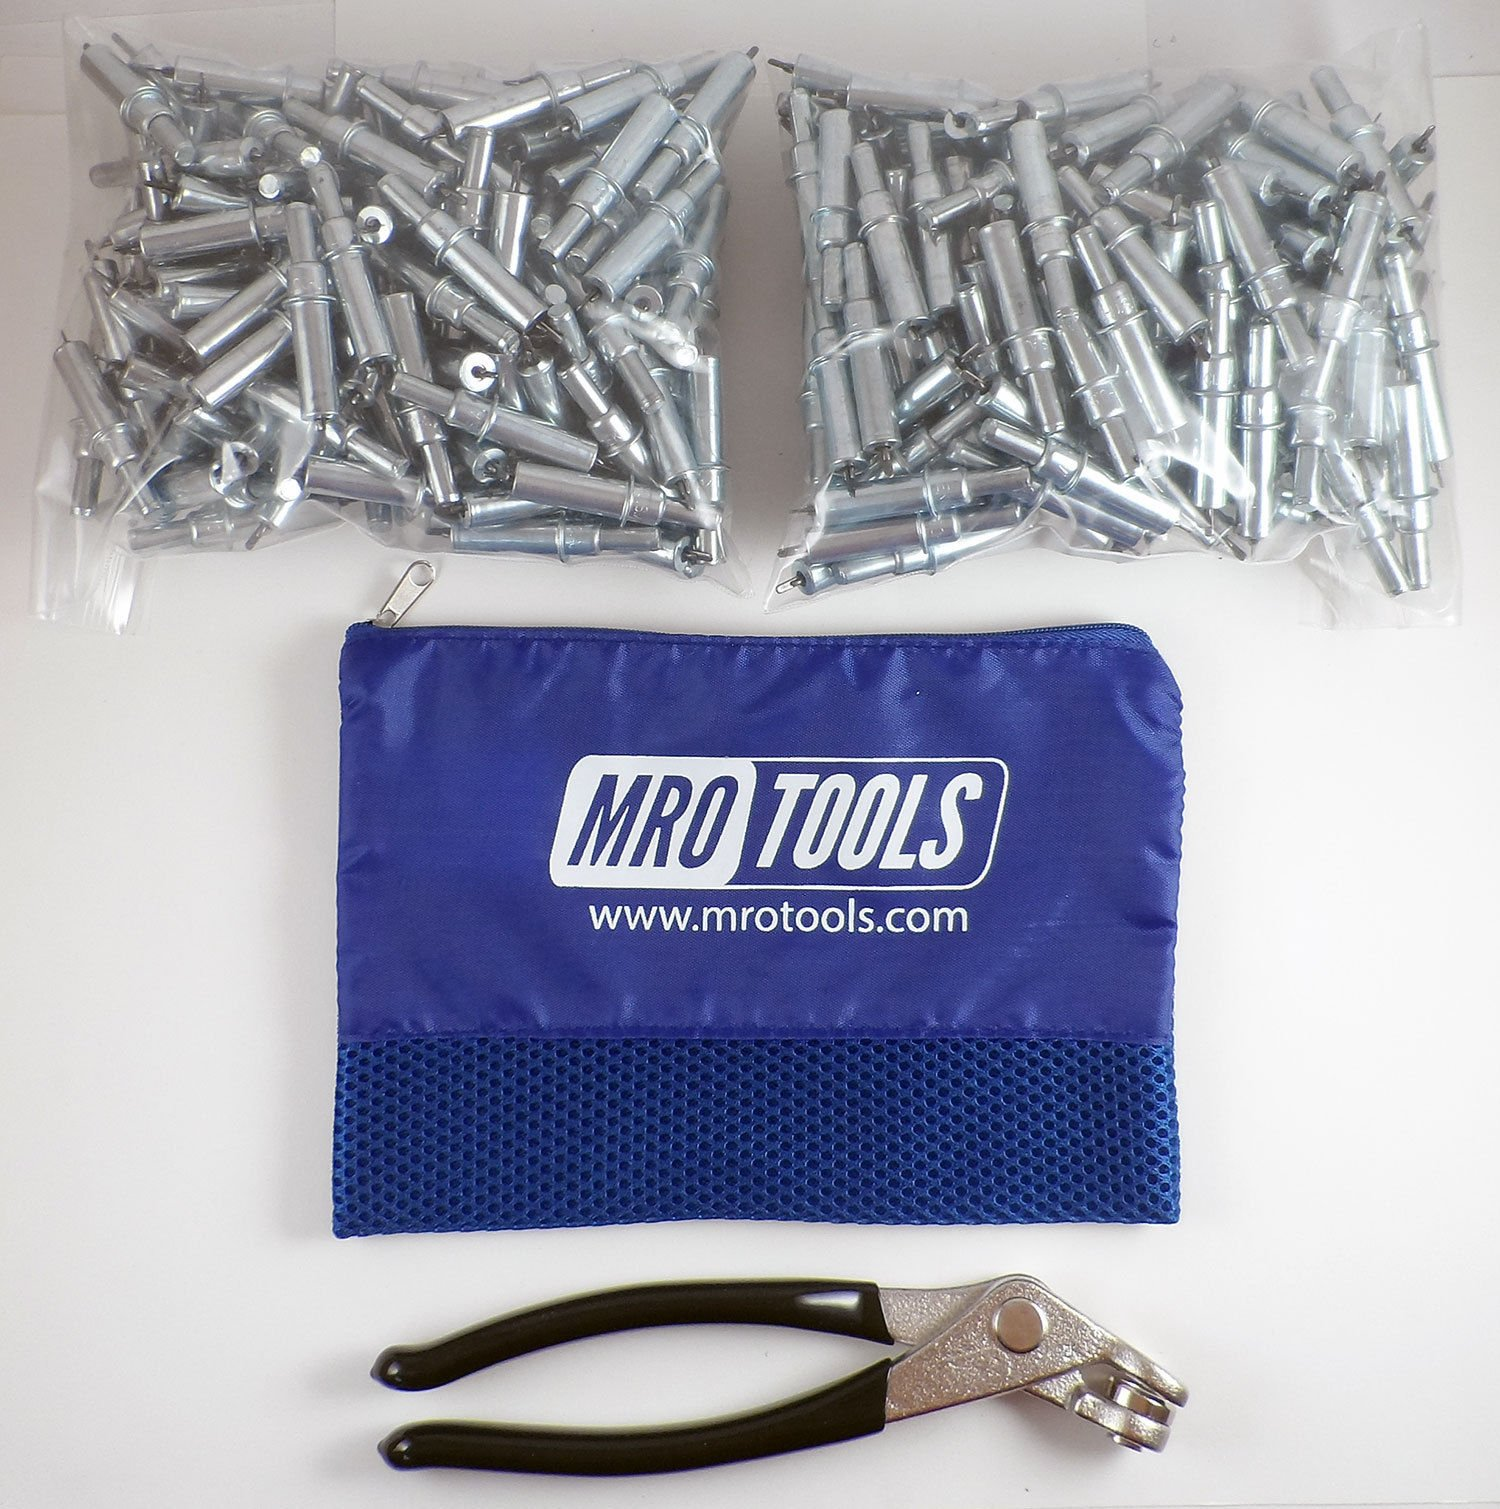 300 3/32 Cleco Sheet Metal Fasteners + Cleco Pliers w/Carry Bag (K1S300-3/32) by MRO Tools Cleco Fasteners